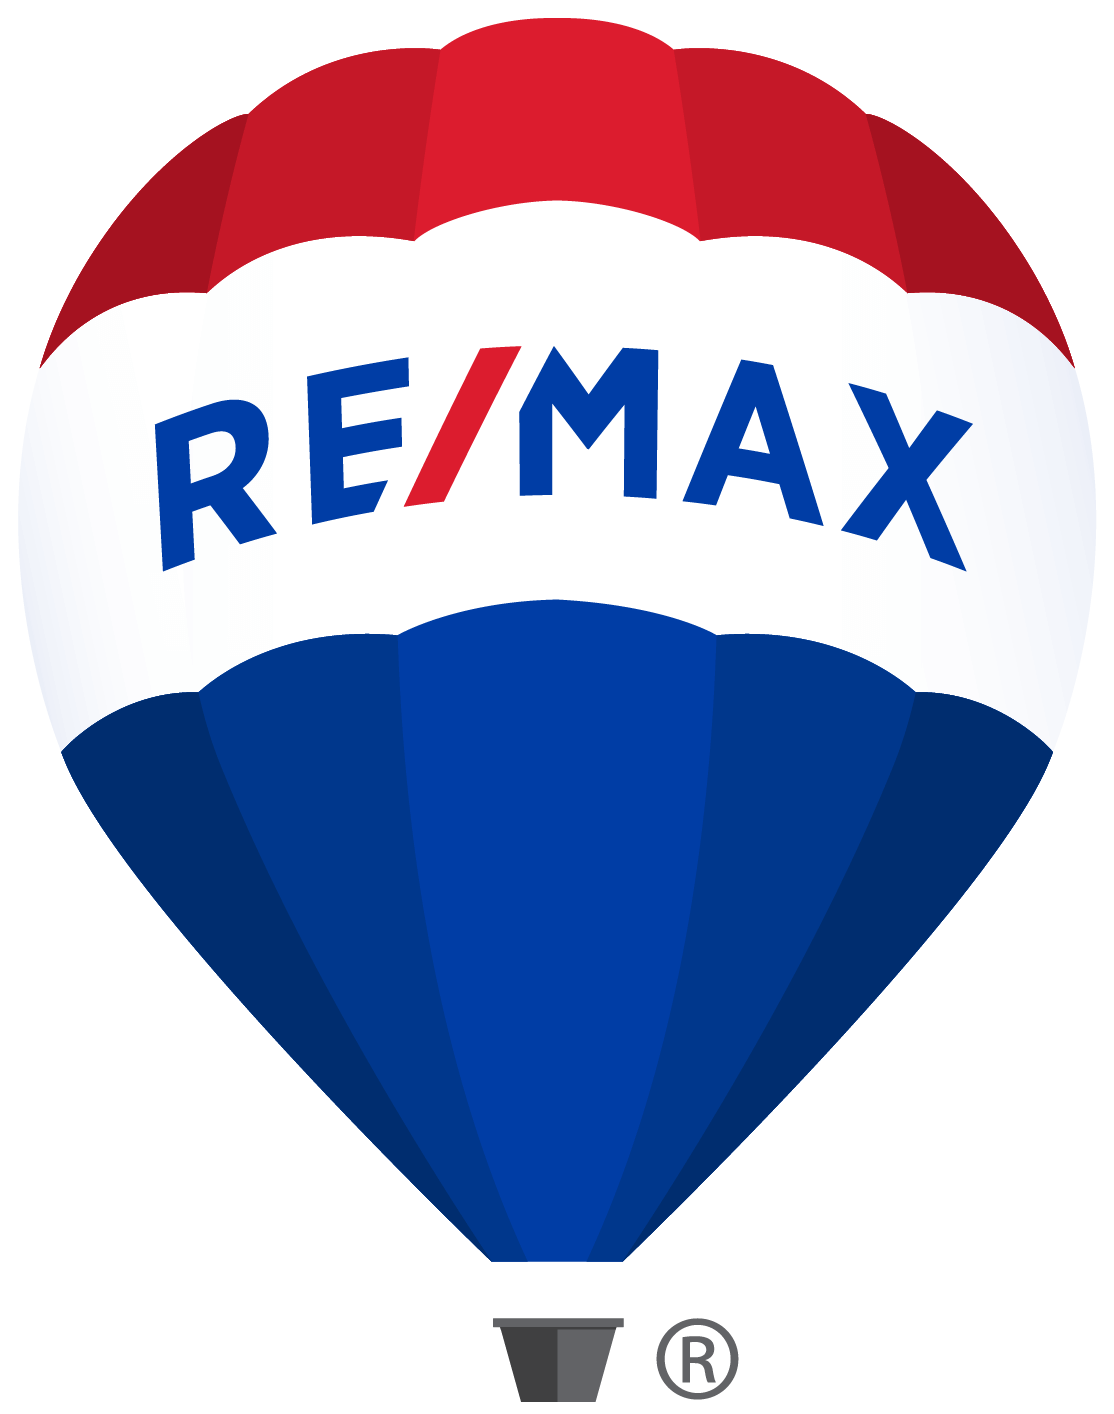 RE/MAX                                      NEED I SAY MORE?                        LARRY STANUL                                             262-751-1386